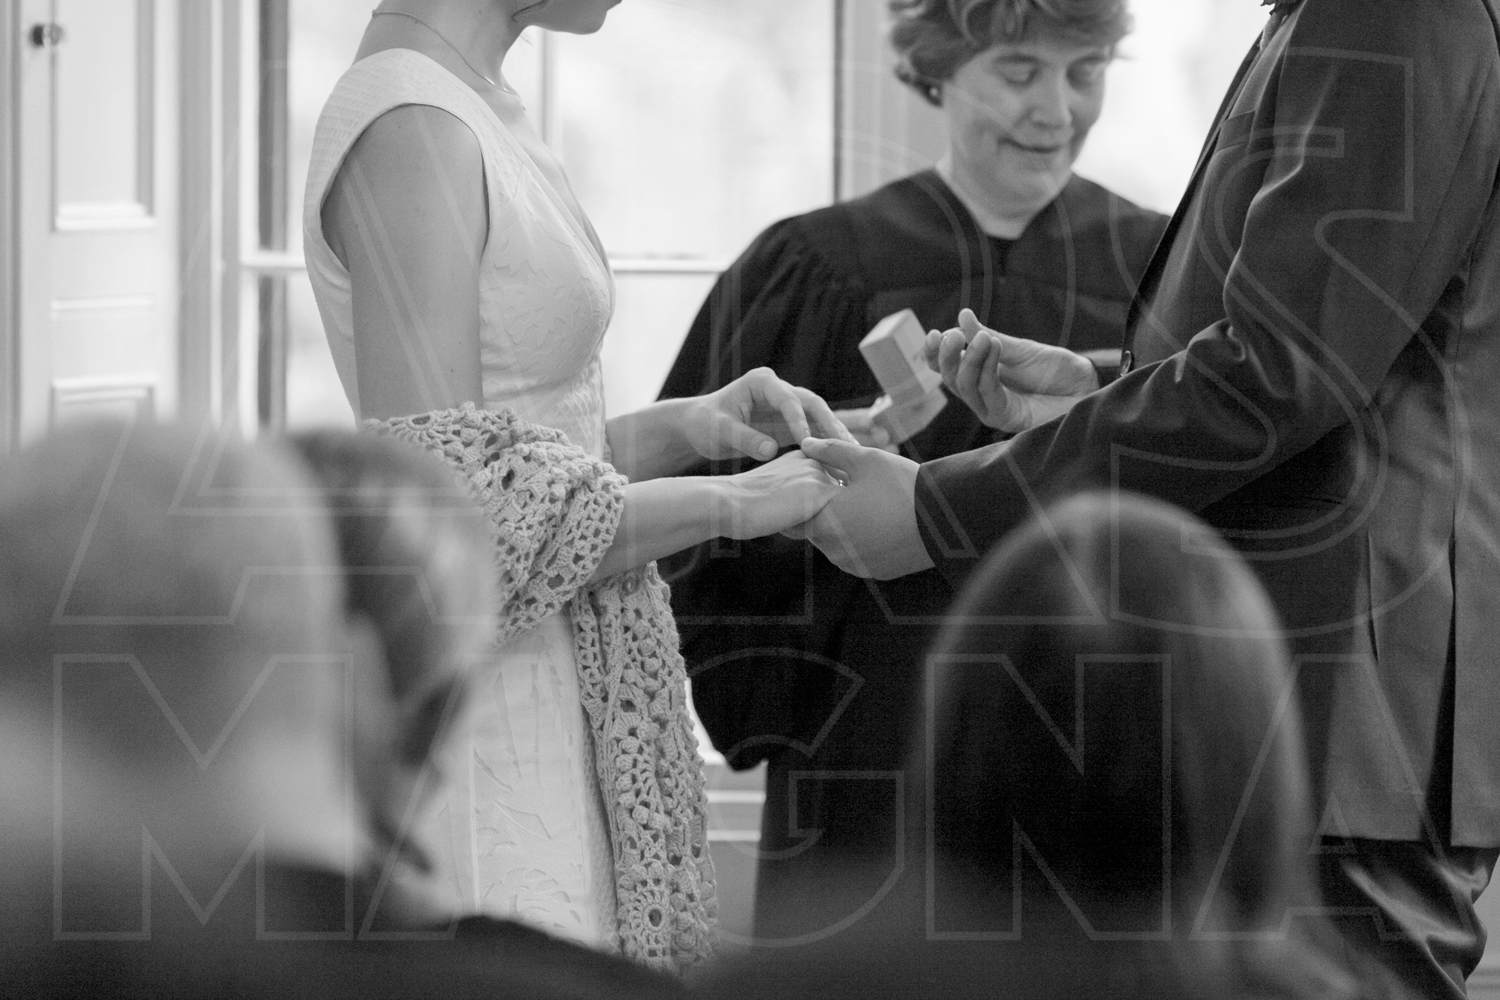 commanders mansion indoor ceremony wedding ring exchange photos